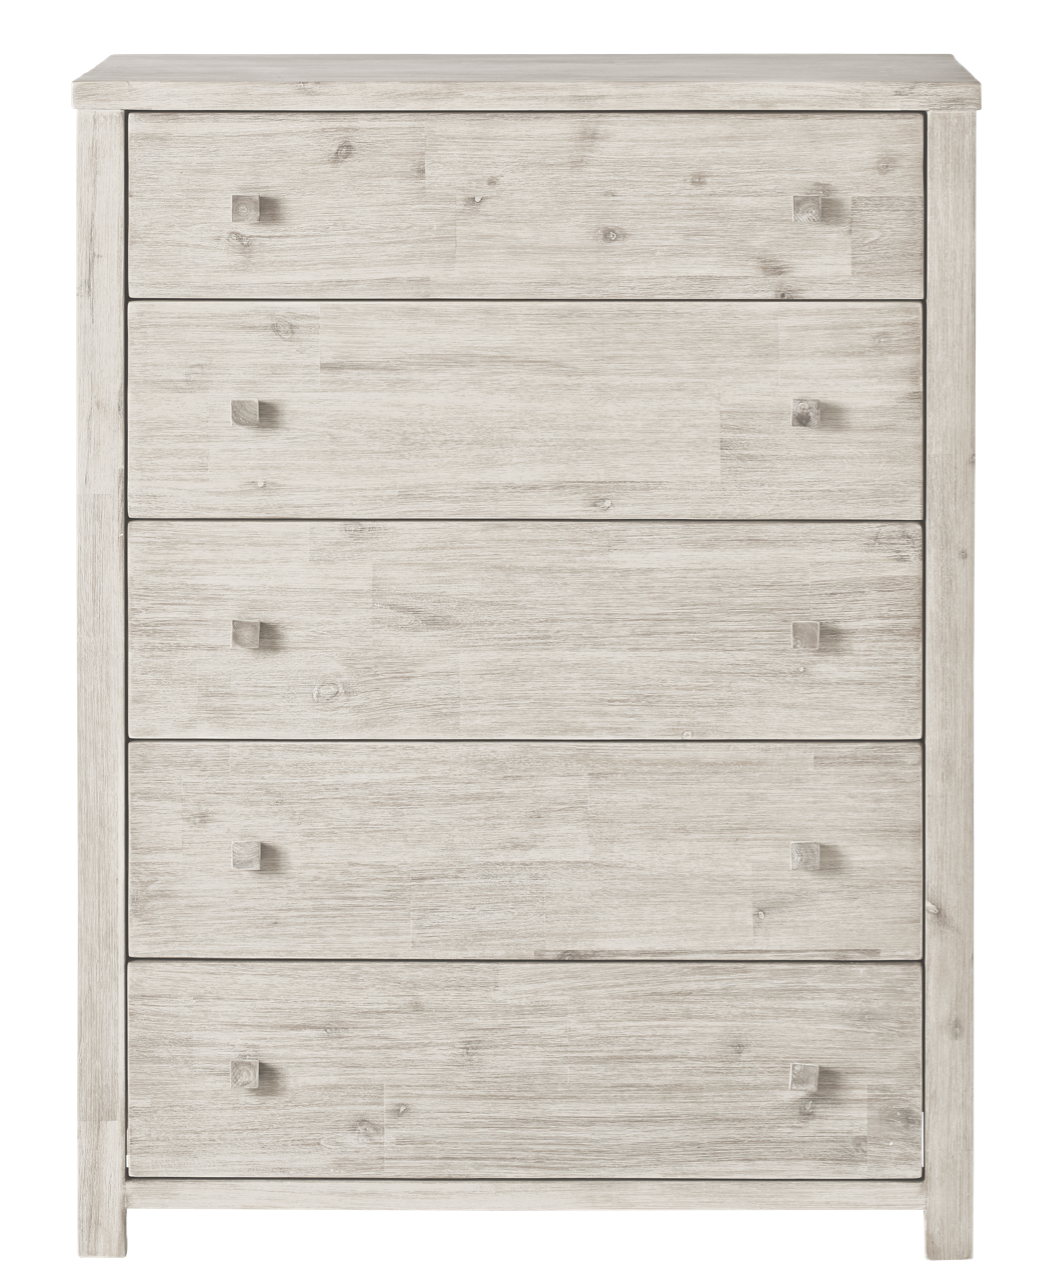 Ocean Grove Tallboy by Snooze, a Dressers & Chests of Drawers for sale on Style Sourcebook